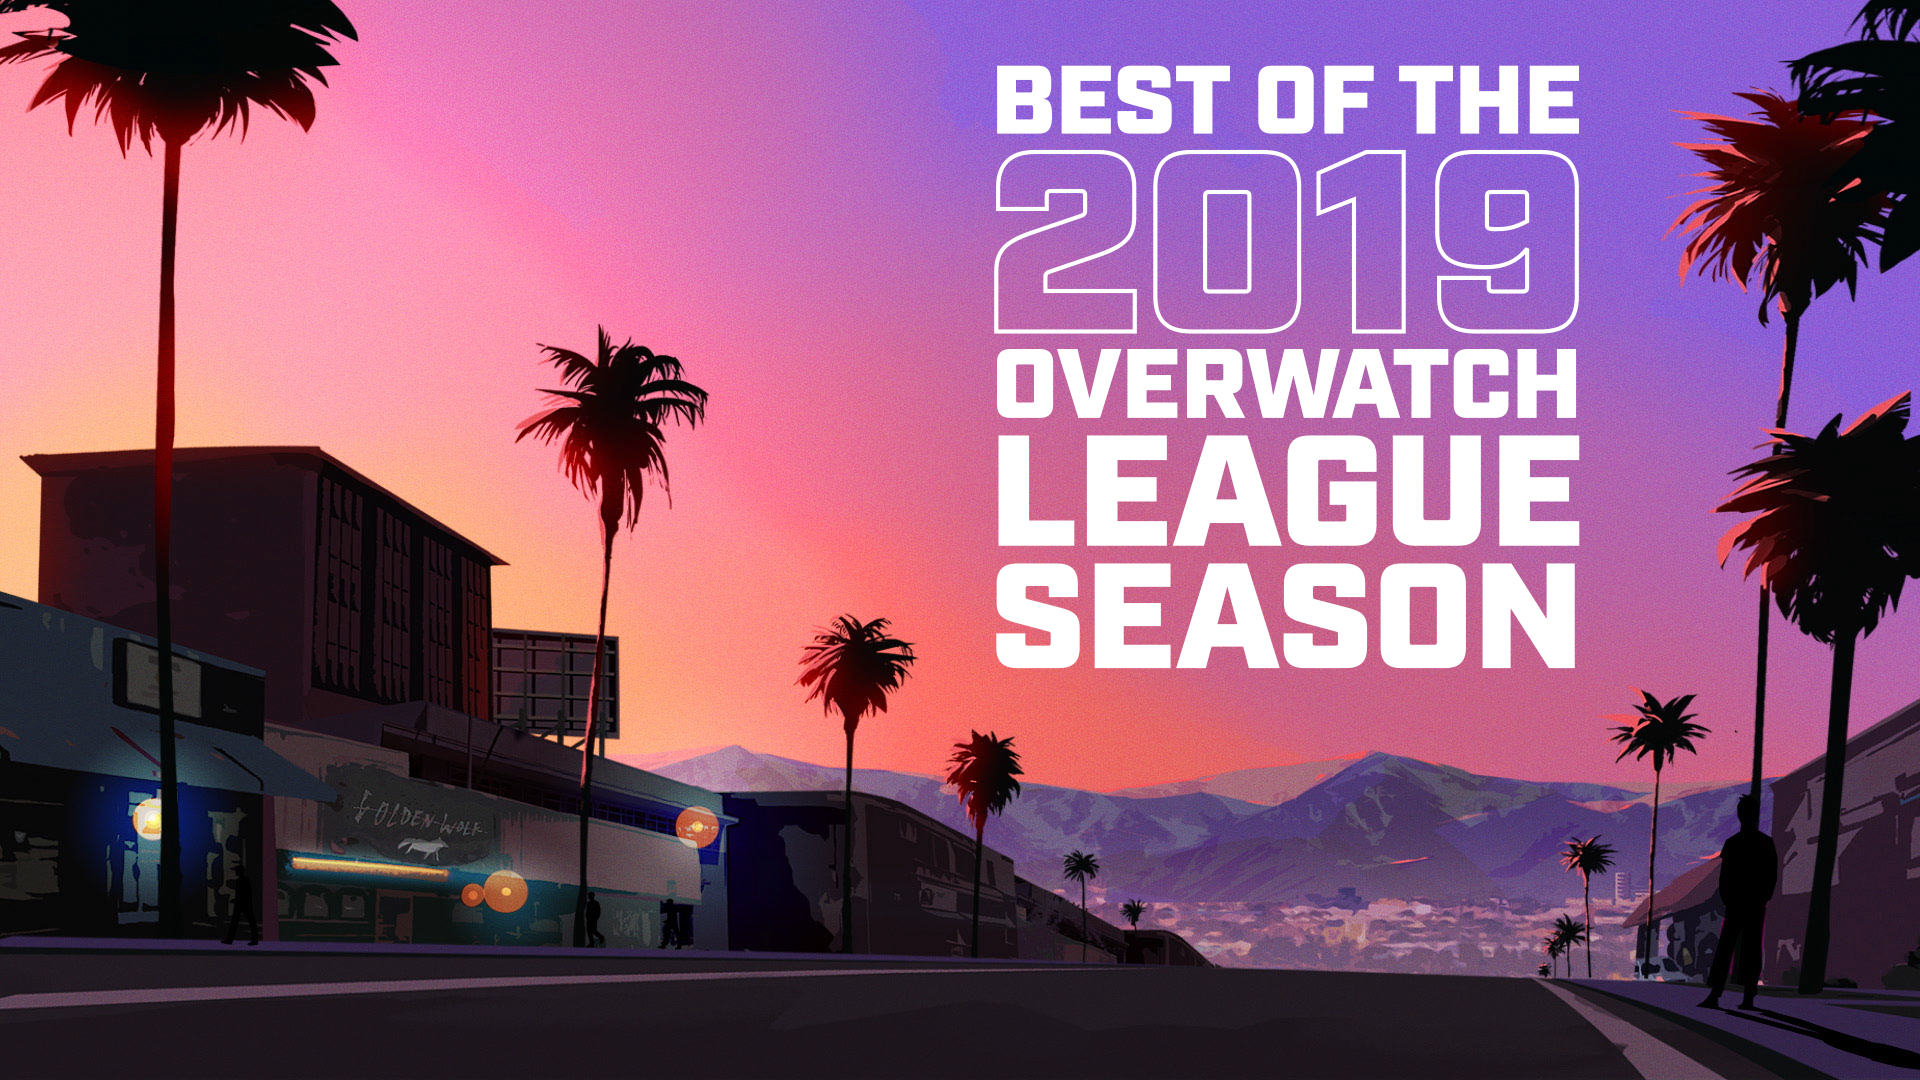 Best of the 2019 Overwatch League